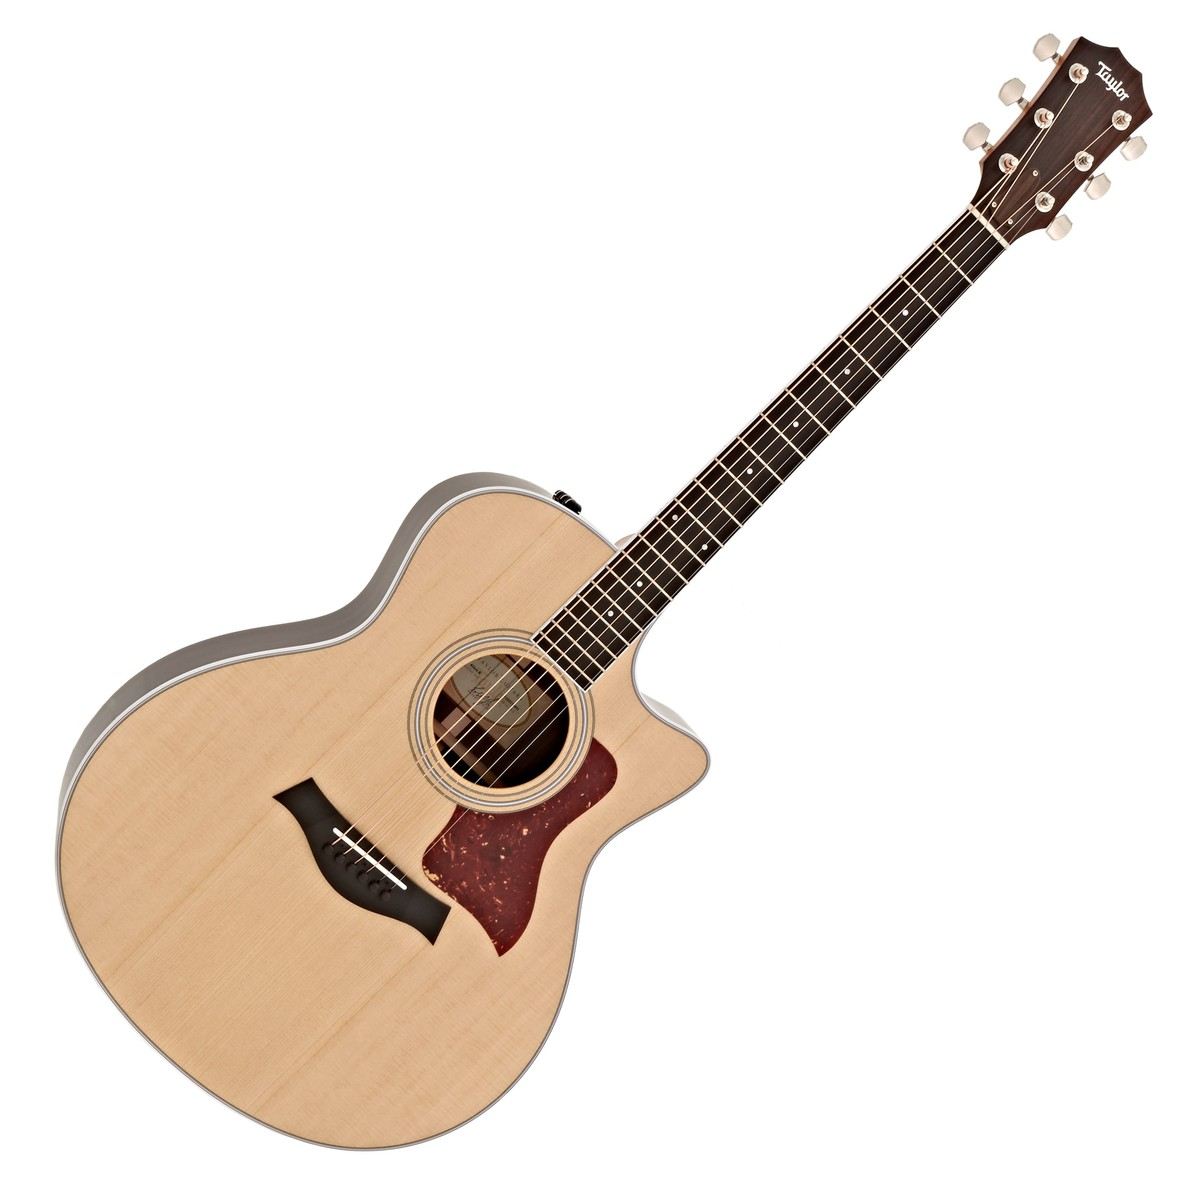 Taylor 416ce R Electro Acoustic Guitar 1103236051 At Gear4music